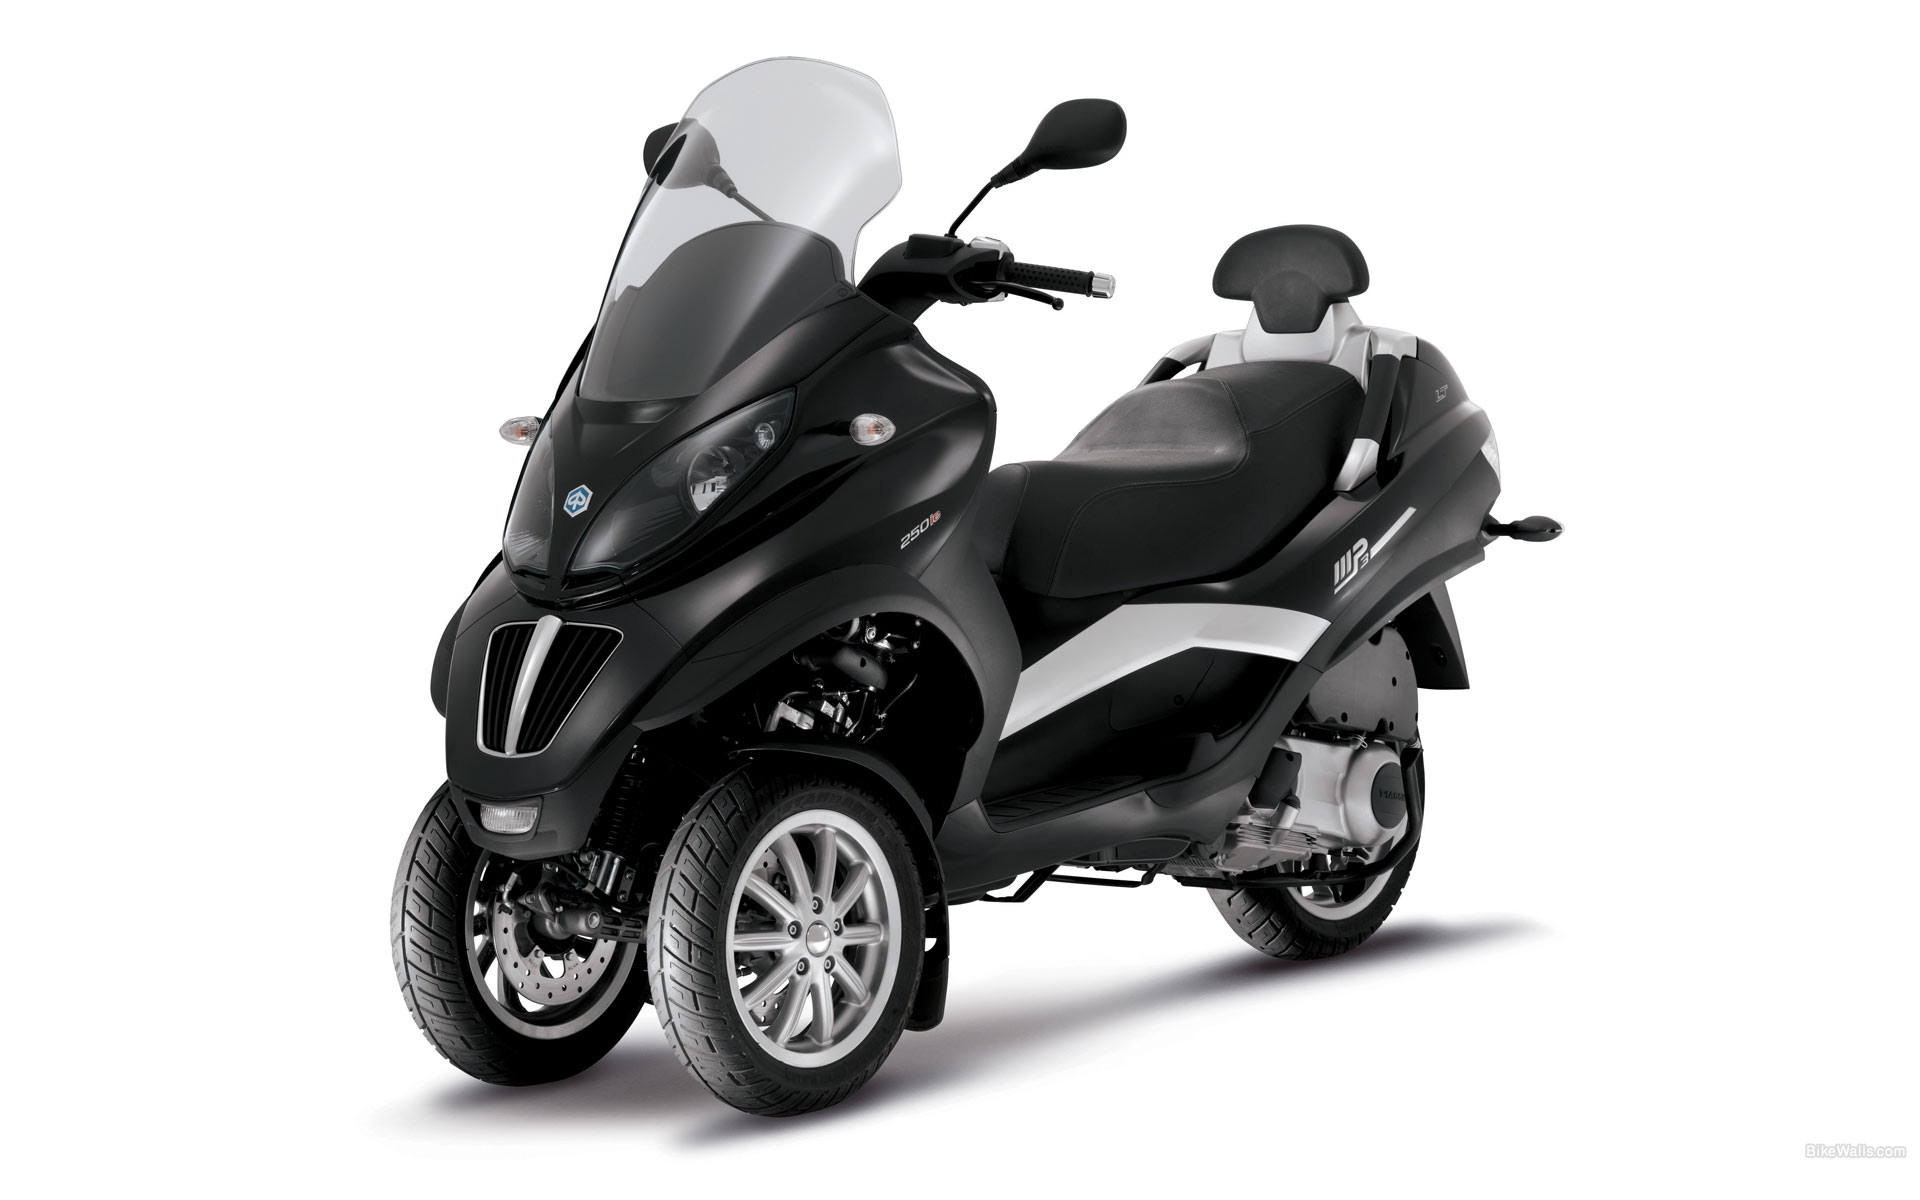 piaggio mp3 250 ie lt 2008 2009 braking system transmissions transmissions epc parts oem. Black Bedroom Furniture Sets. Home Design Ideas